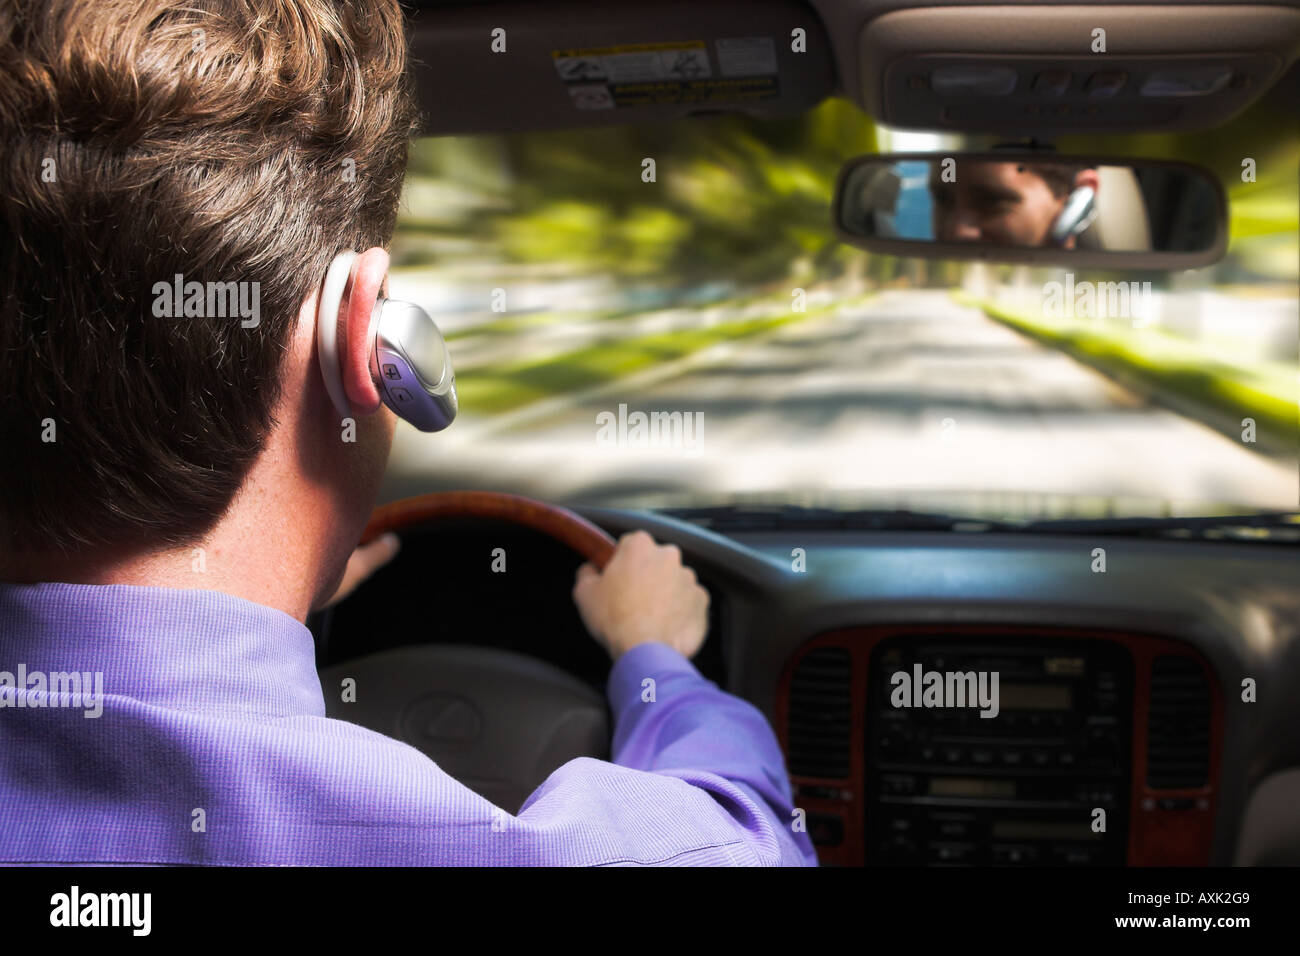 man person hair head shirt ear phone driving holding steering wheel talking speeding moving down road path rearview - Stock Image